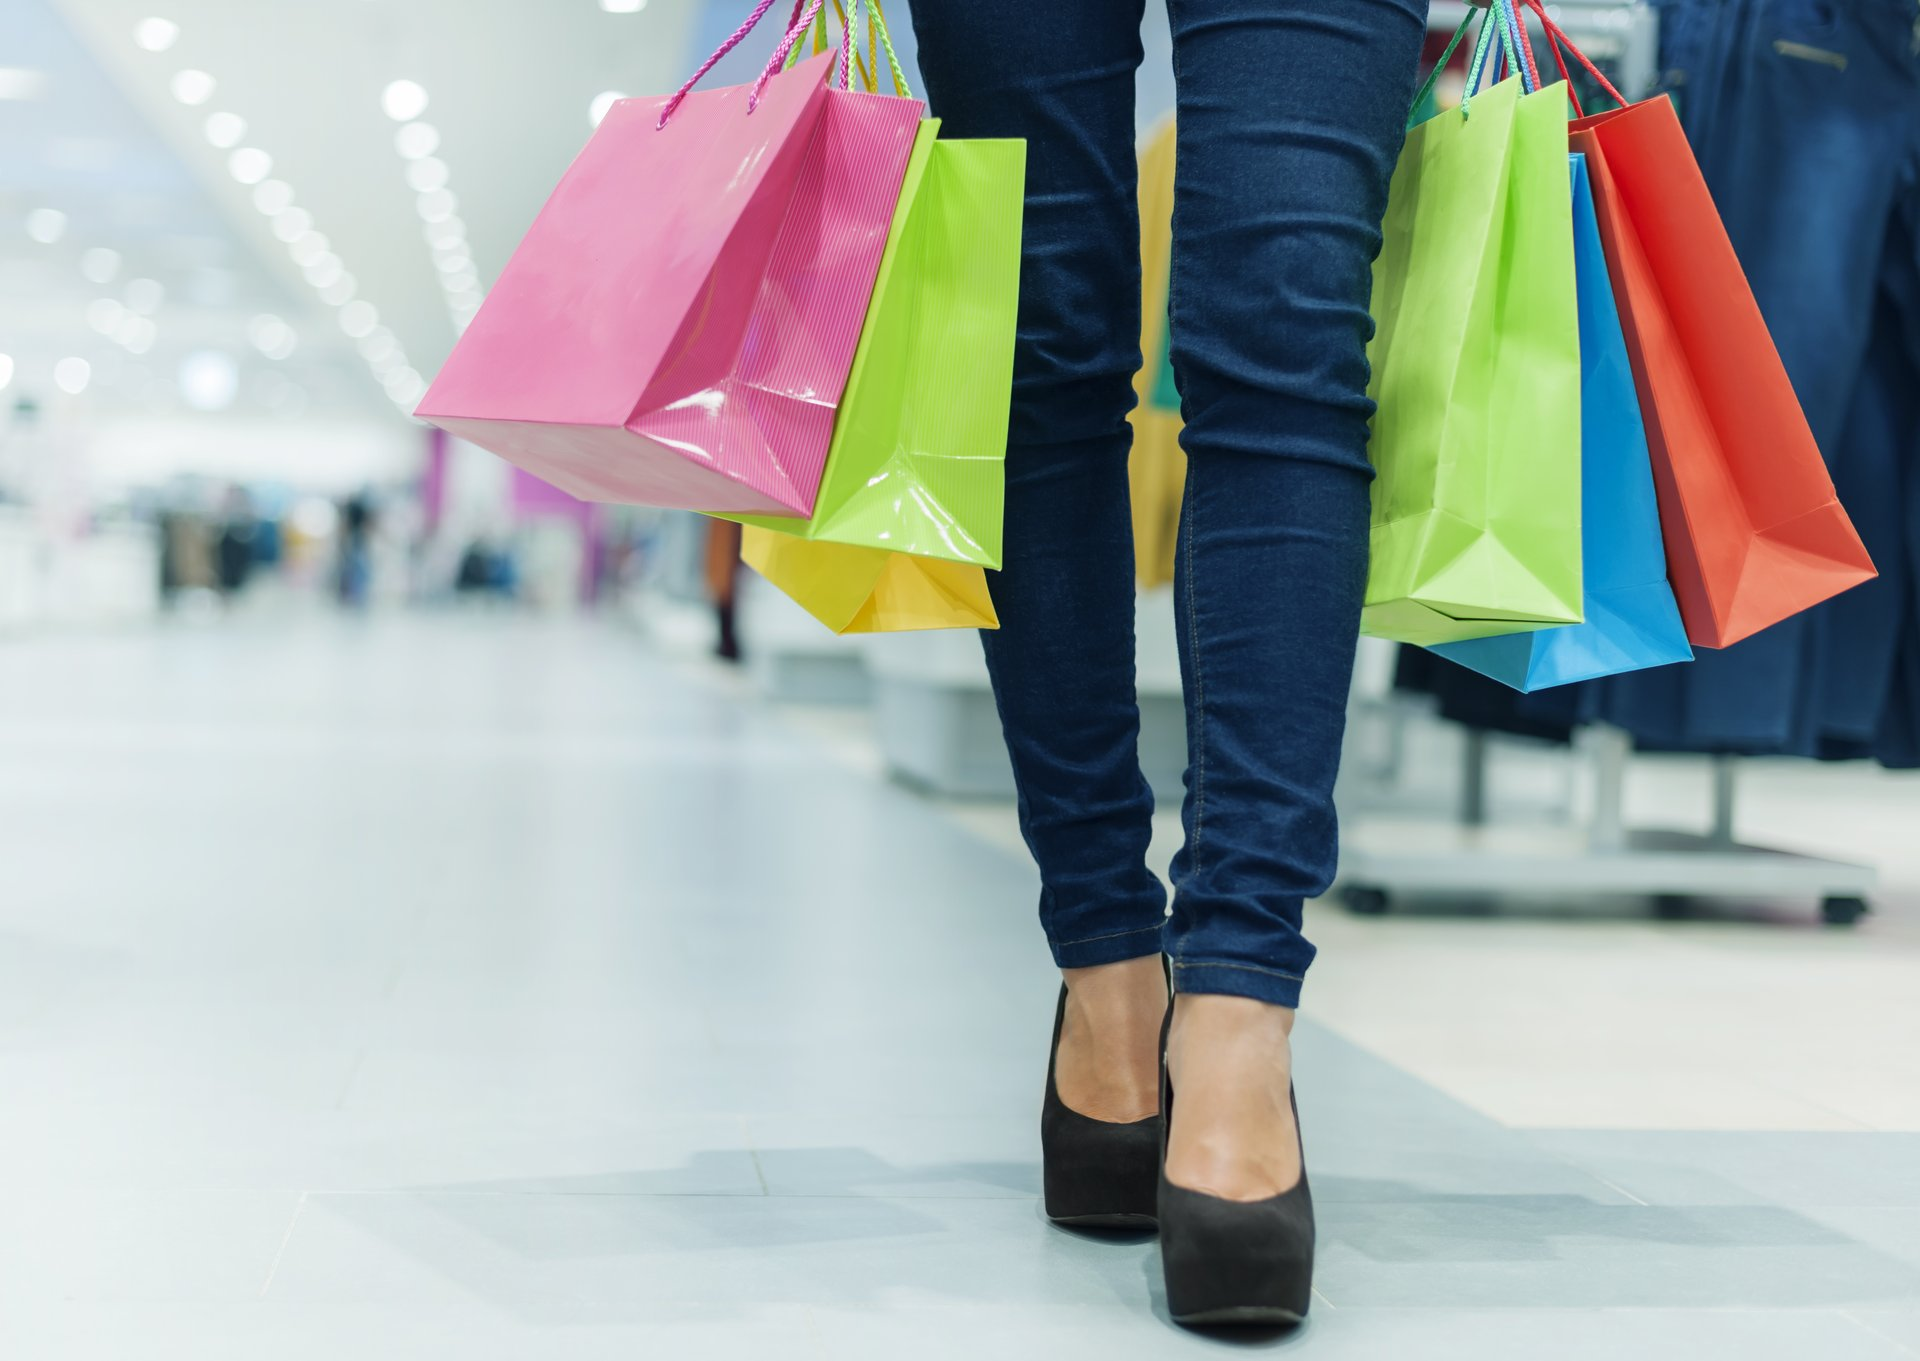 Woman's legs, hands with lots of shopping bags.